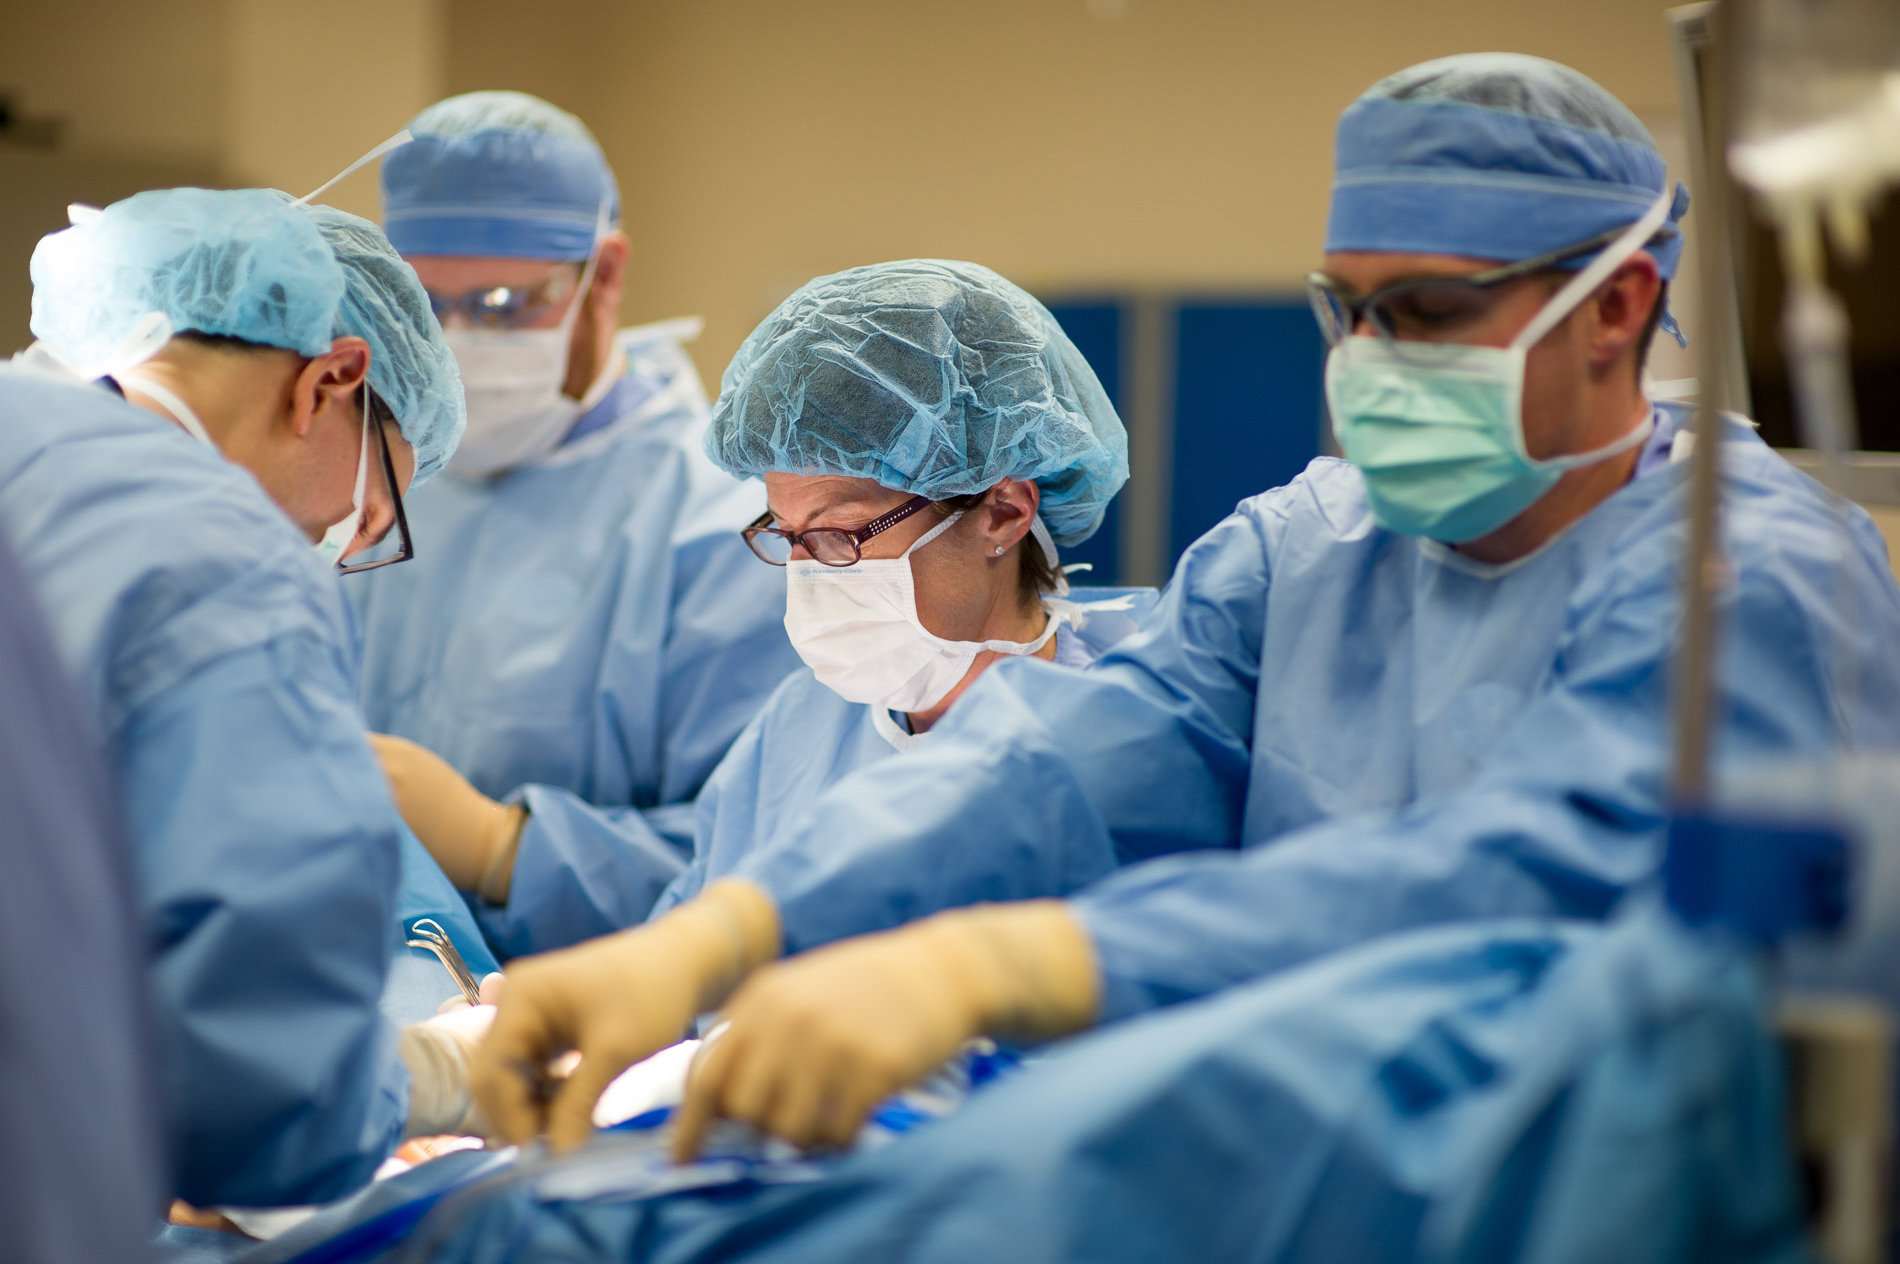 Surgery Photography